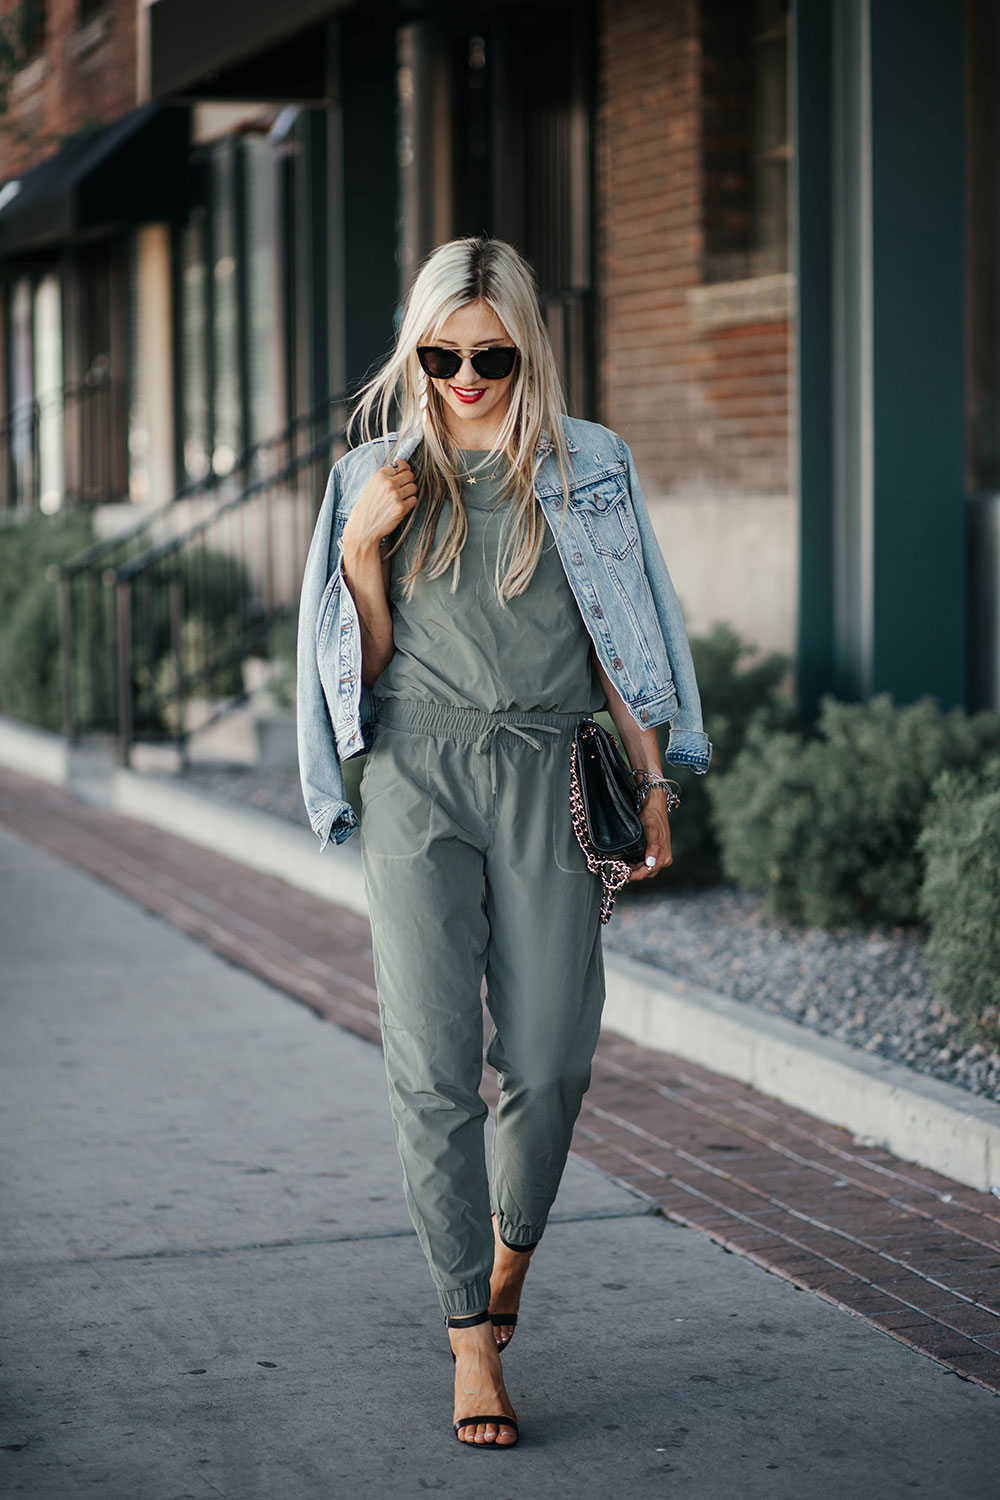 How to wear a jumpsuit 4 ways | summer date night outfit ideas | how to style a jumpsuit | Little Miss Fearless